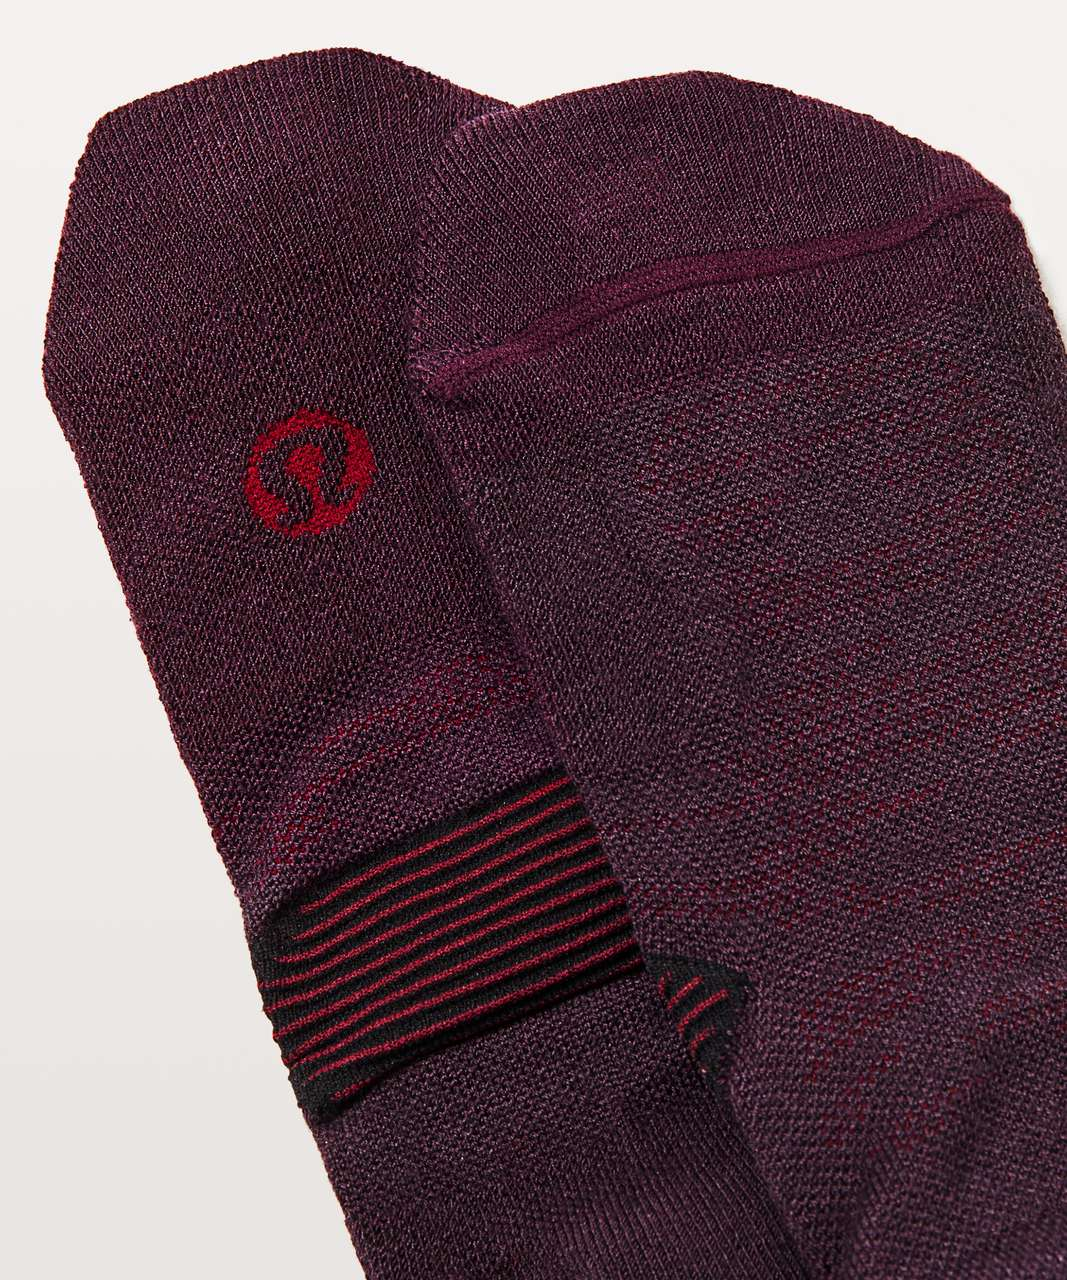 Lululemon Speed Sock Wool - Black Cherry / Deep Rouge